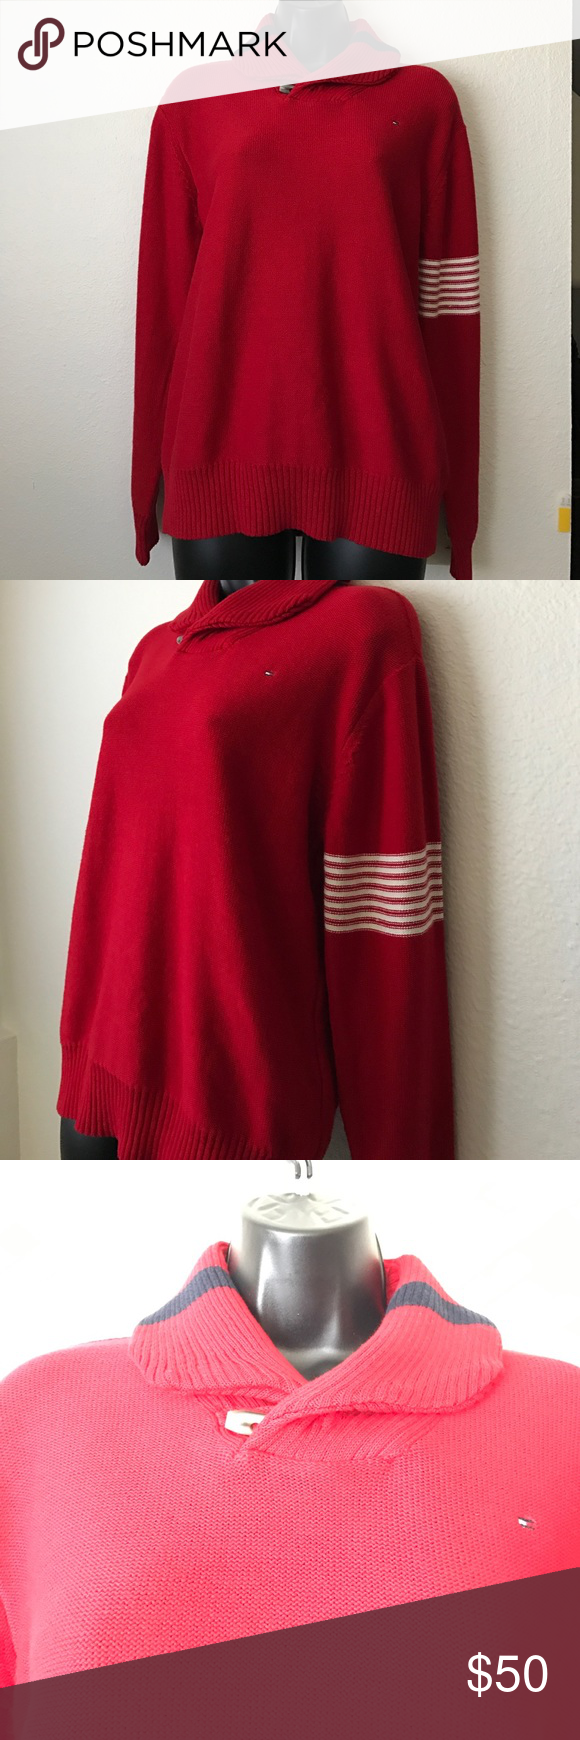 Tommy Hilfiger Vintage Turtleneck Sweater Size L 💕Tommy Hilfiger Vintage Turle Neck Sweater Size L NWT💕 💕Size: L💕 💕Fabric: 100% Cotton💕 💕NWT & Never Worn💕 💕No snags, rips, Smoke Free House💕 Tommy Hilfiger Sweaters